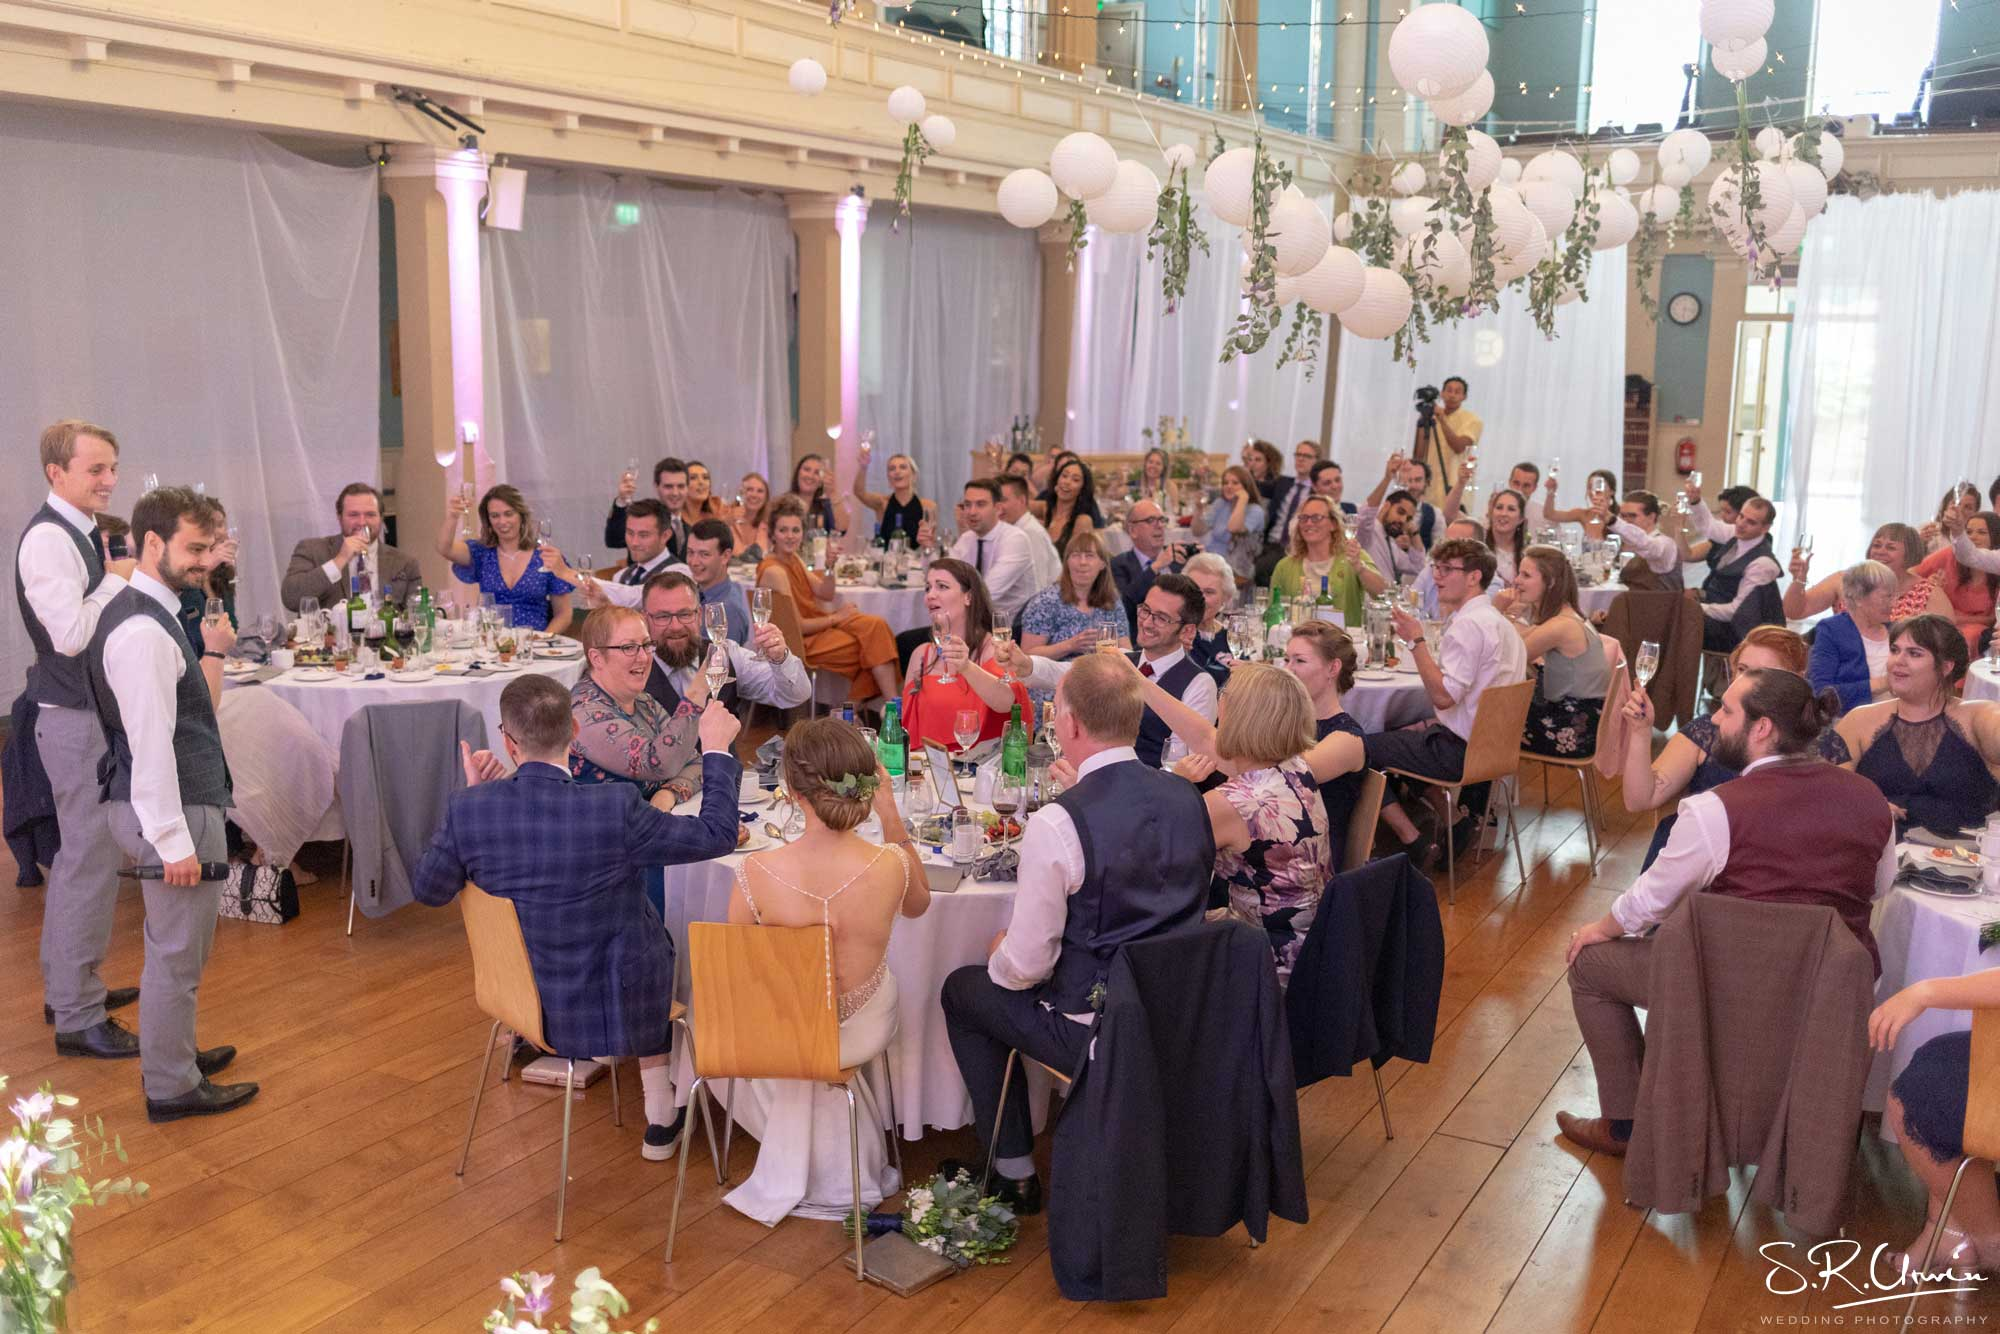 Cabaret Style wedding reception with hanging decor and drapes at St Mary's Venue Hire, London